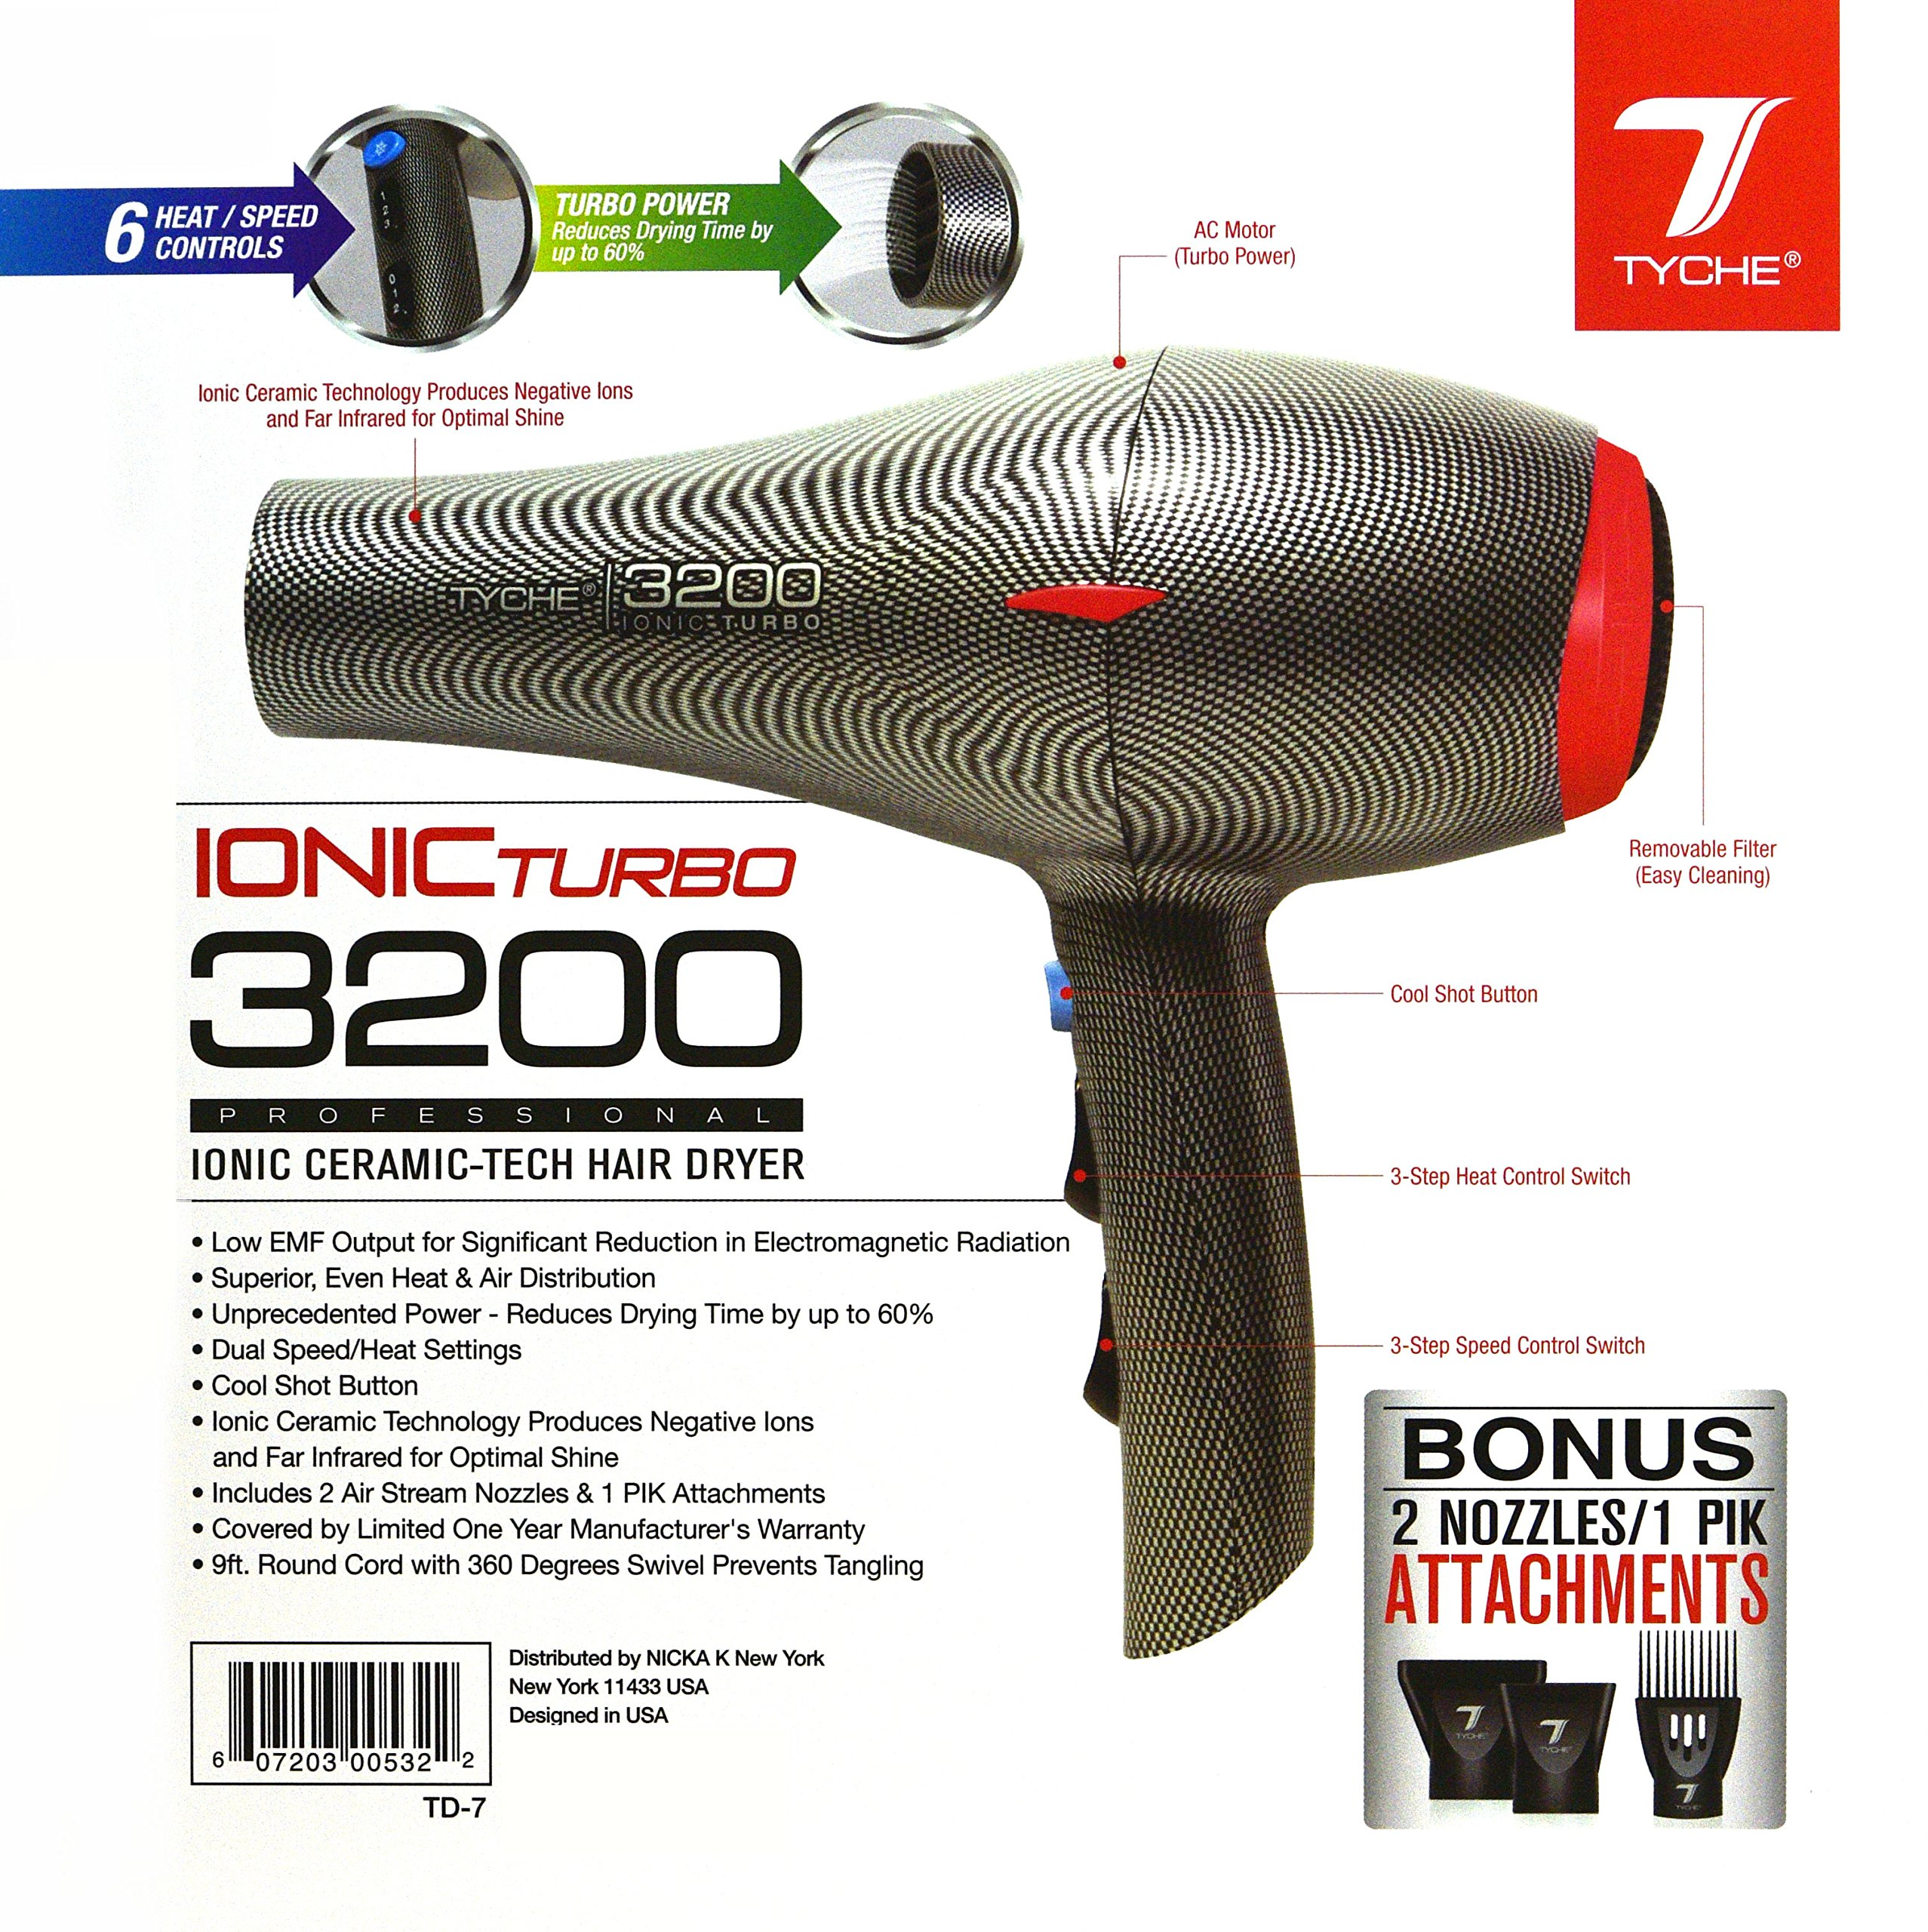 Tyche Turbo 3200 Professional Ionic Ceramic Tech Hair Dryer (1 Year Warranty) Dries Hair Fast, Negative Ions, Infrared, Hair Shine, Electromagnetic, Radiation, Heat & Air Distribution, Superor Power, by Tyche (Image #1)